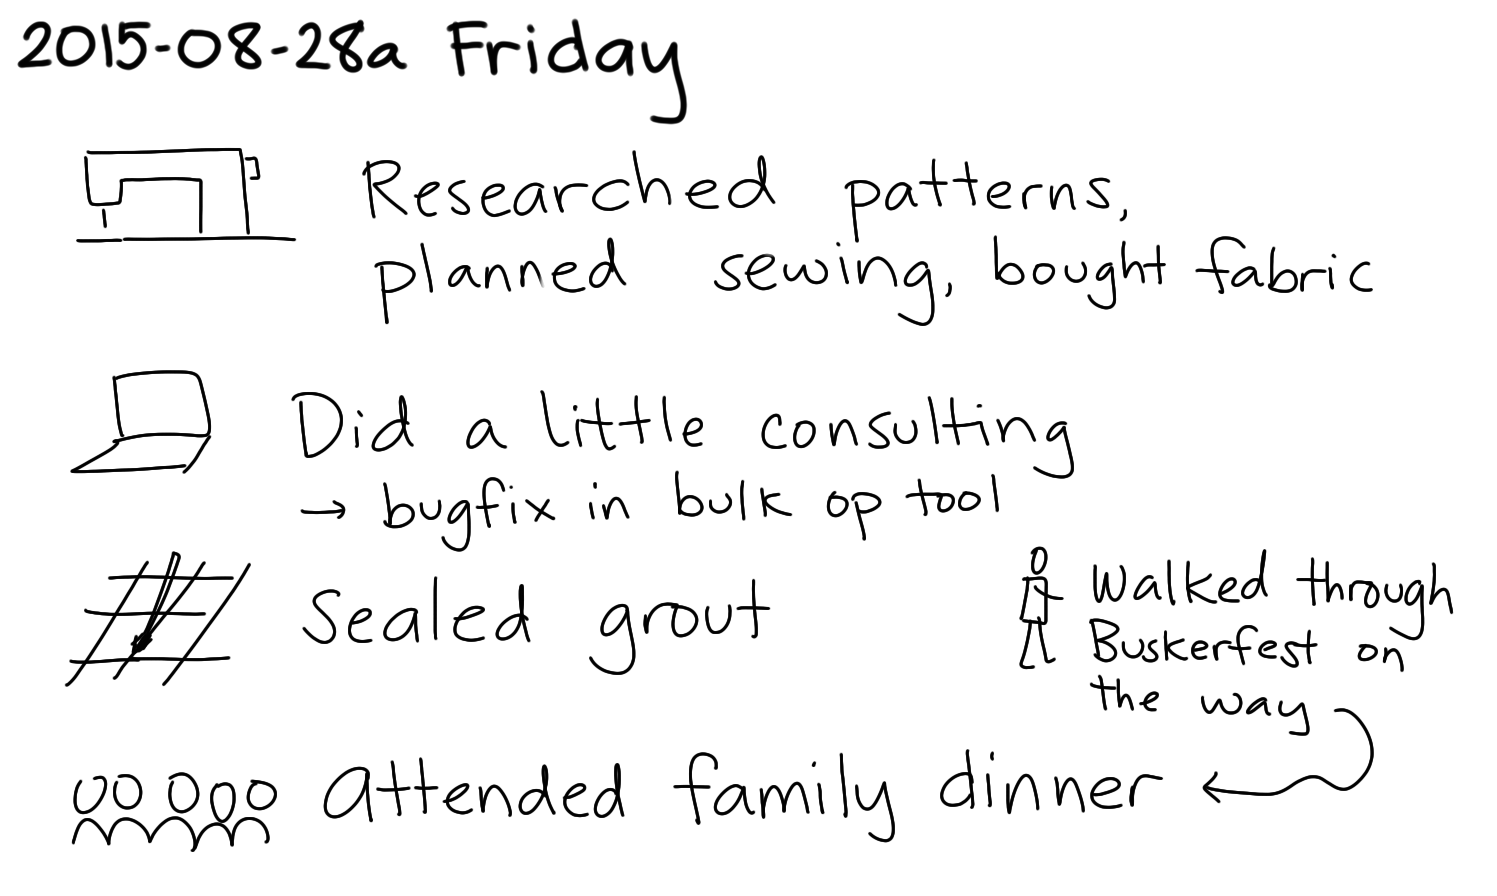 2015-08-28a Friday -- index card #journal.png